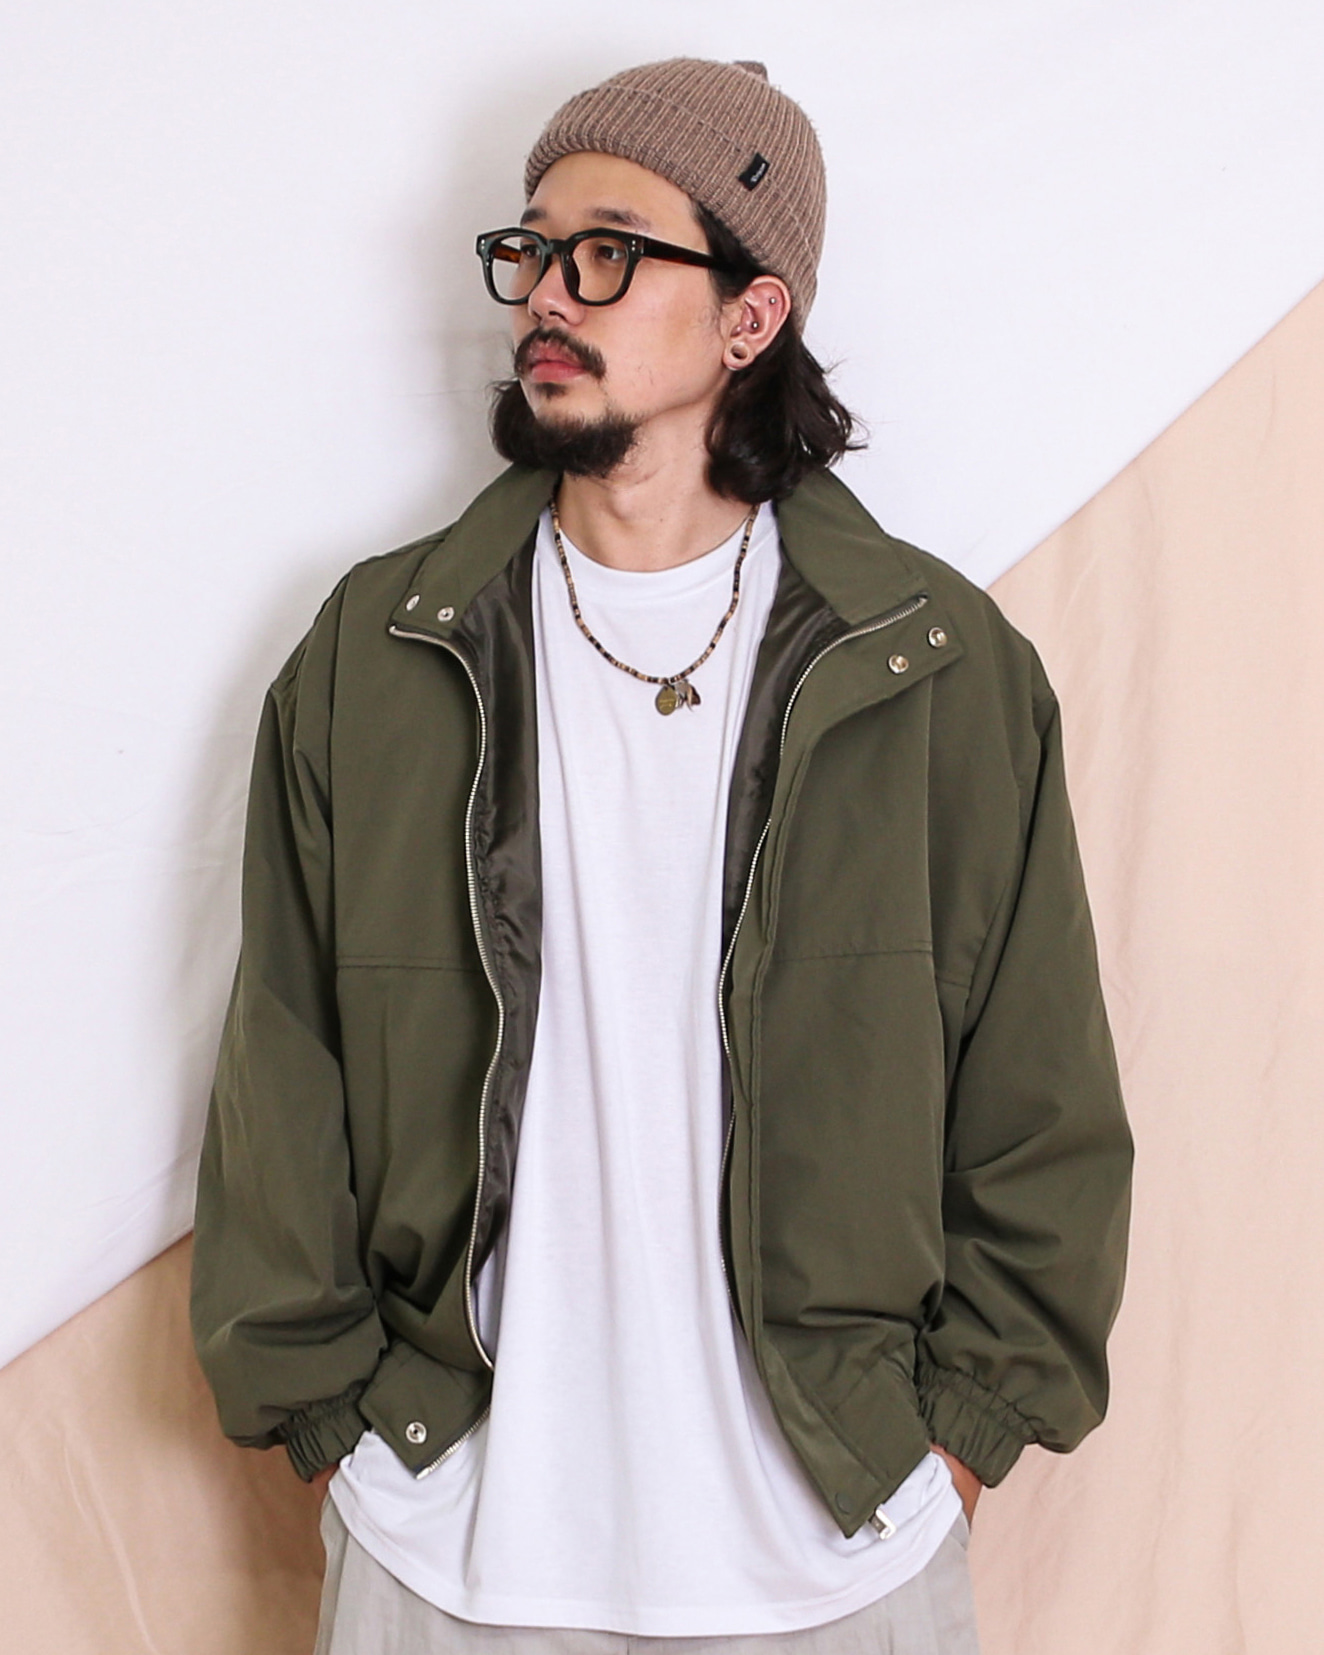 Balloon Zip Up Jacket (Black/Moca/Khaki)